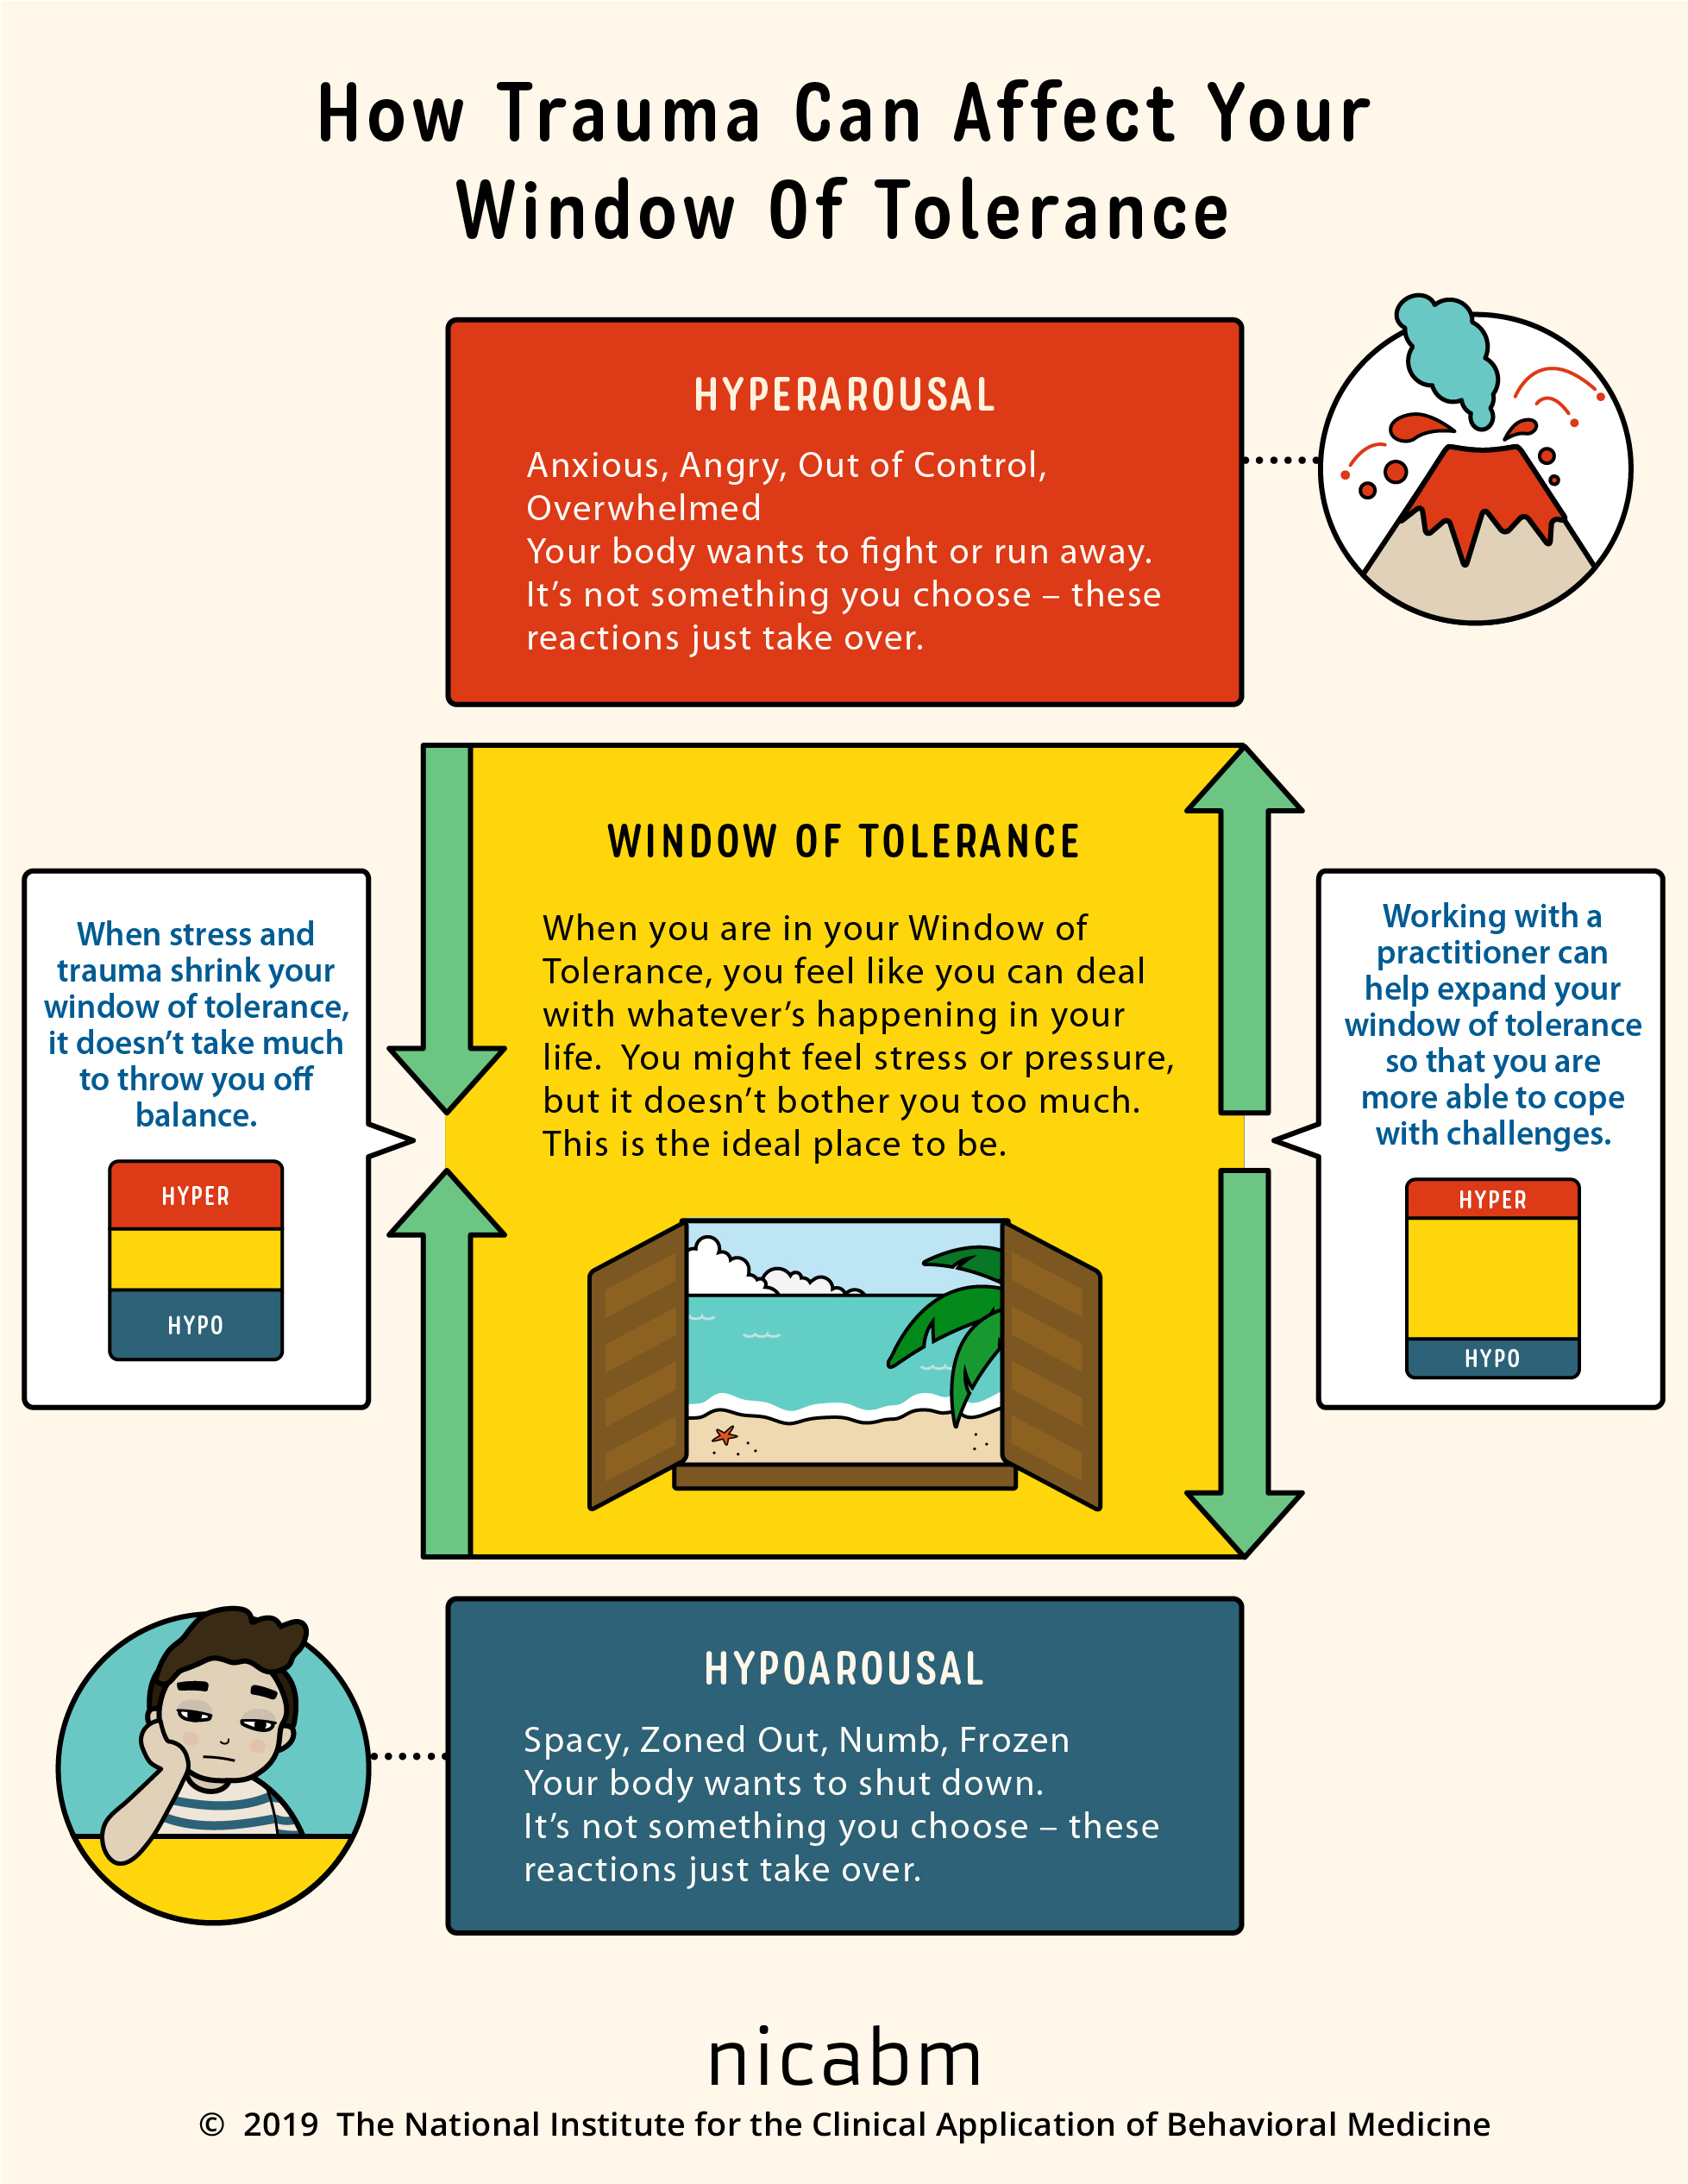 How To Help Your Clients Understand Their Window Of Tolerance